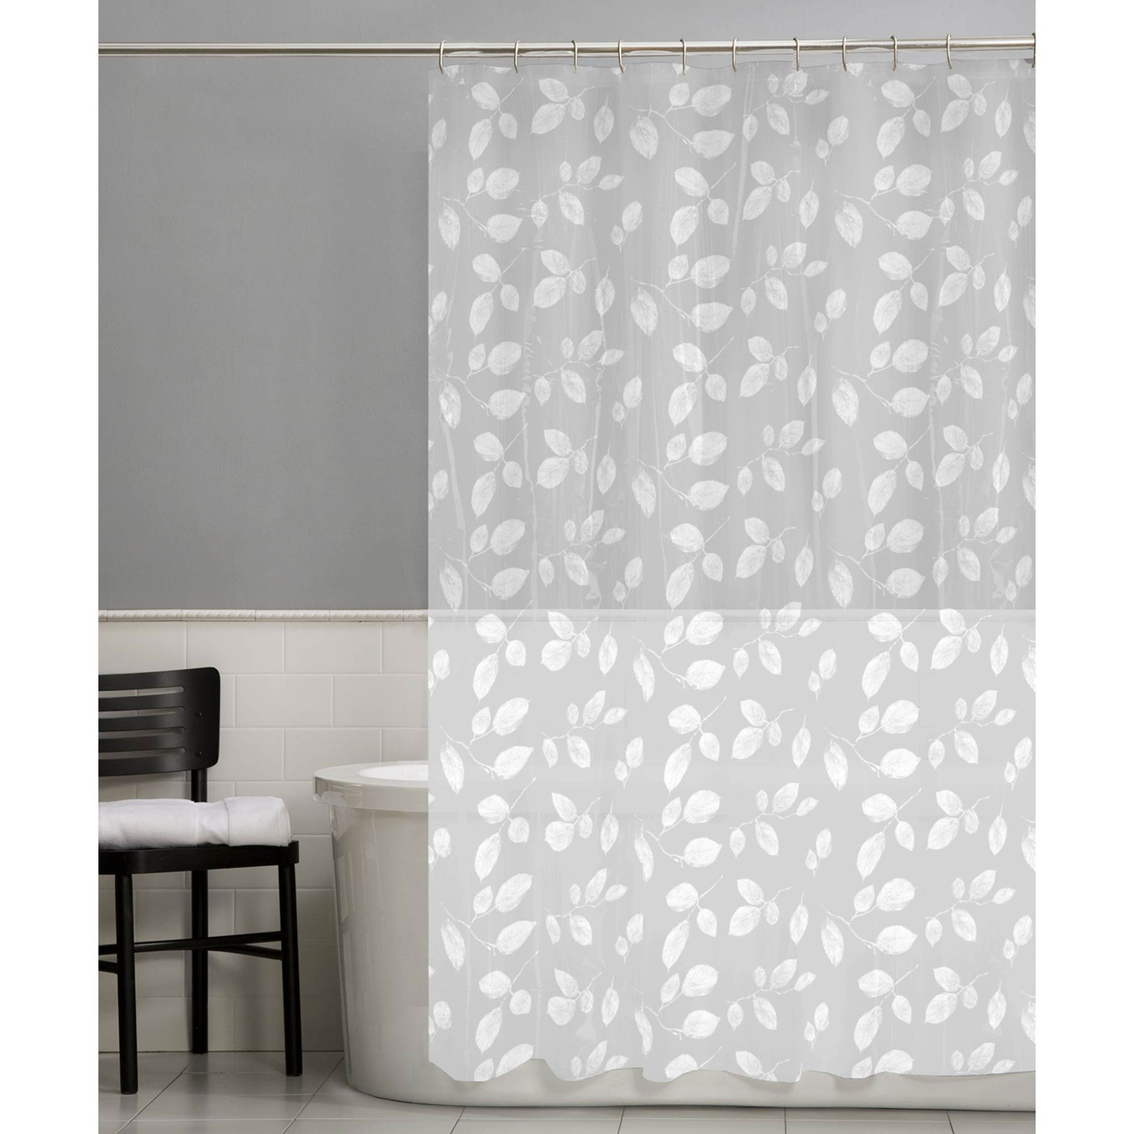 Maytex Just Leaves PEVA Shower Curtain